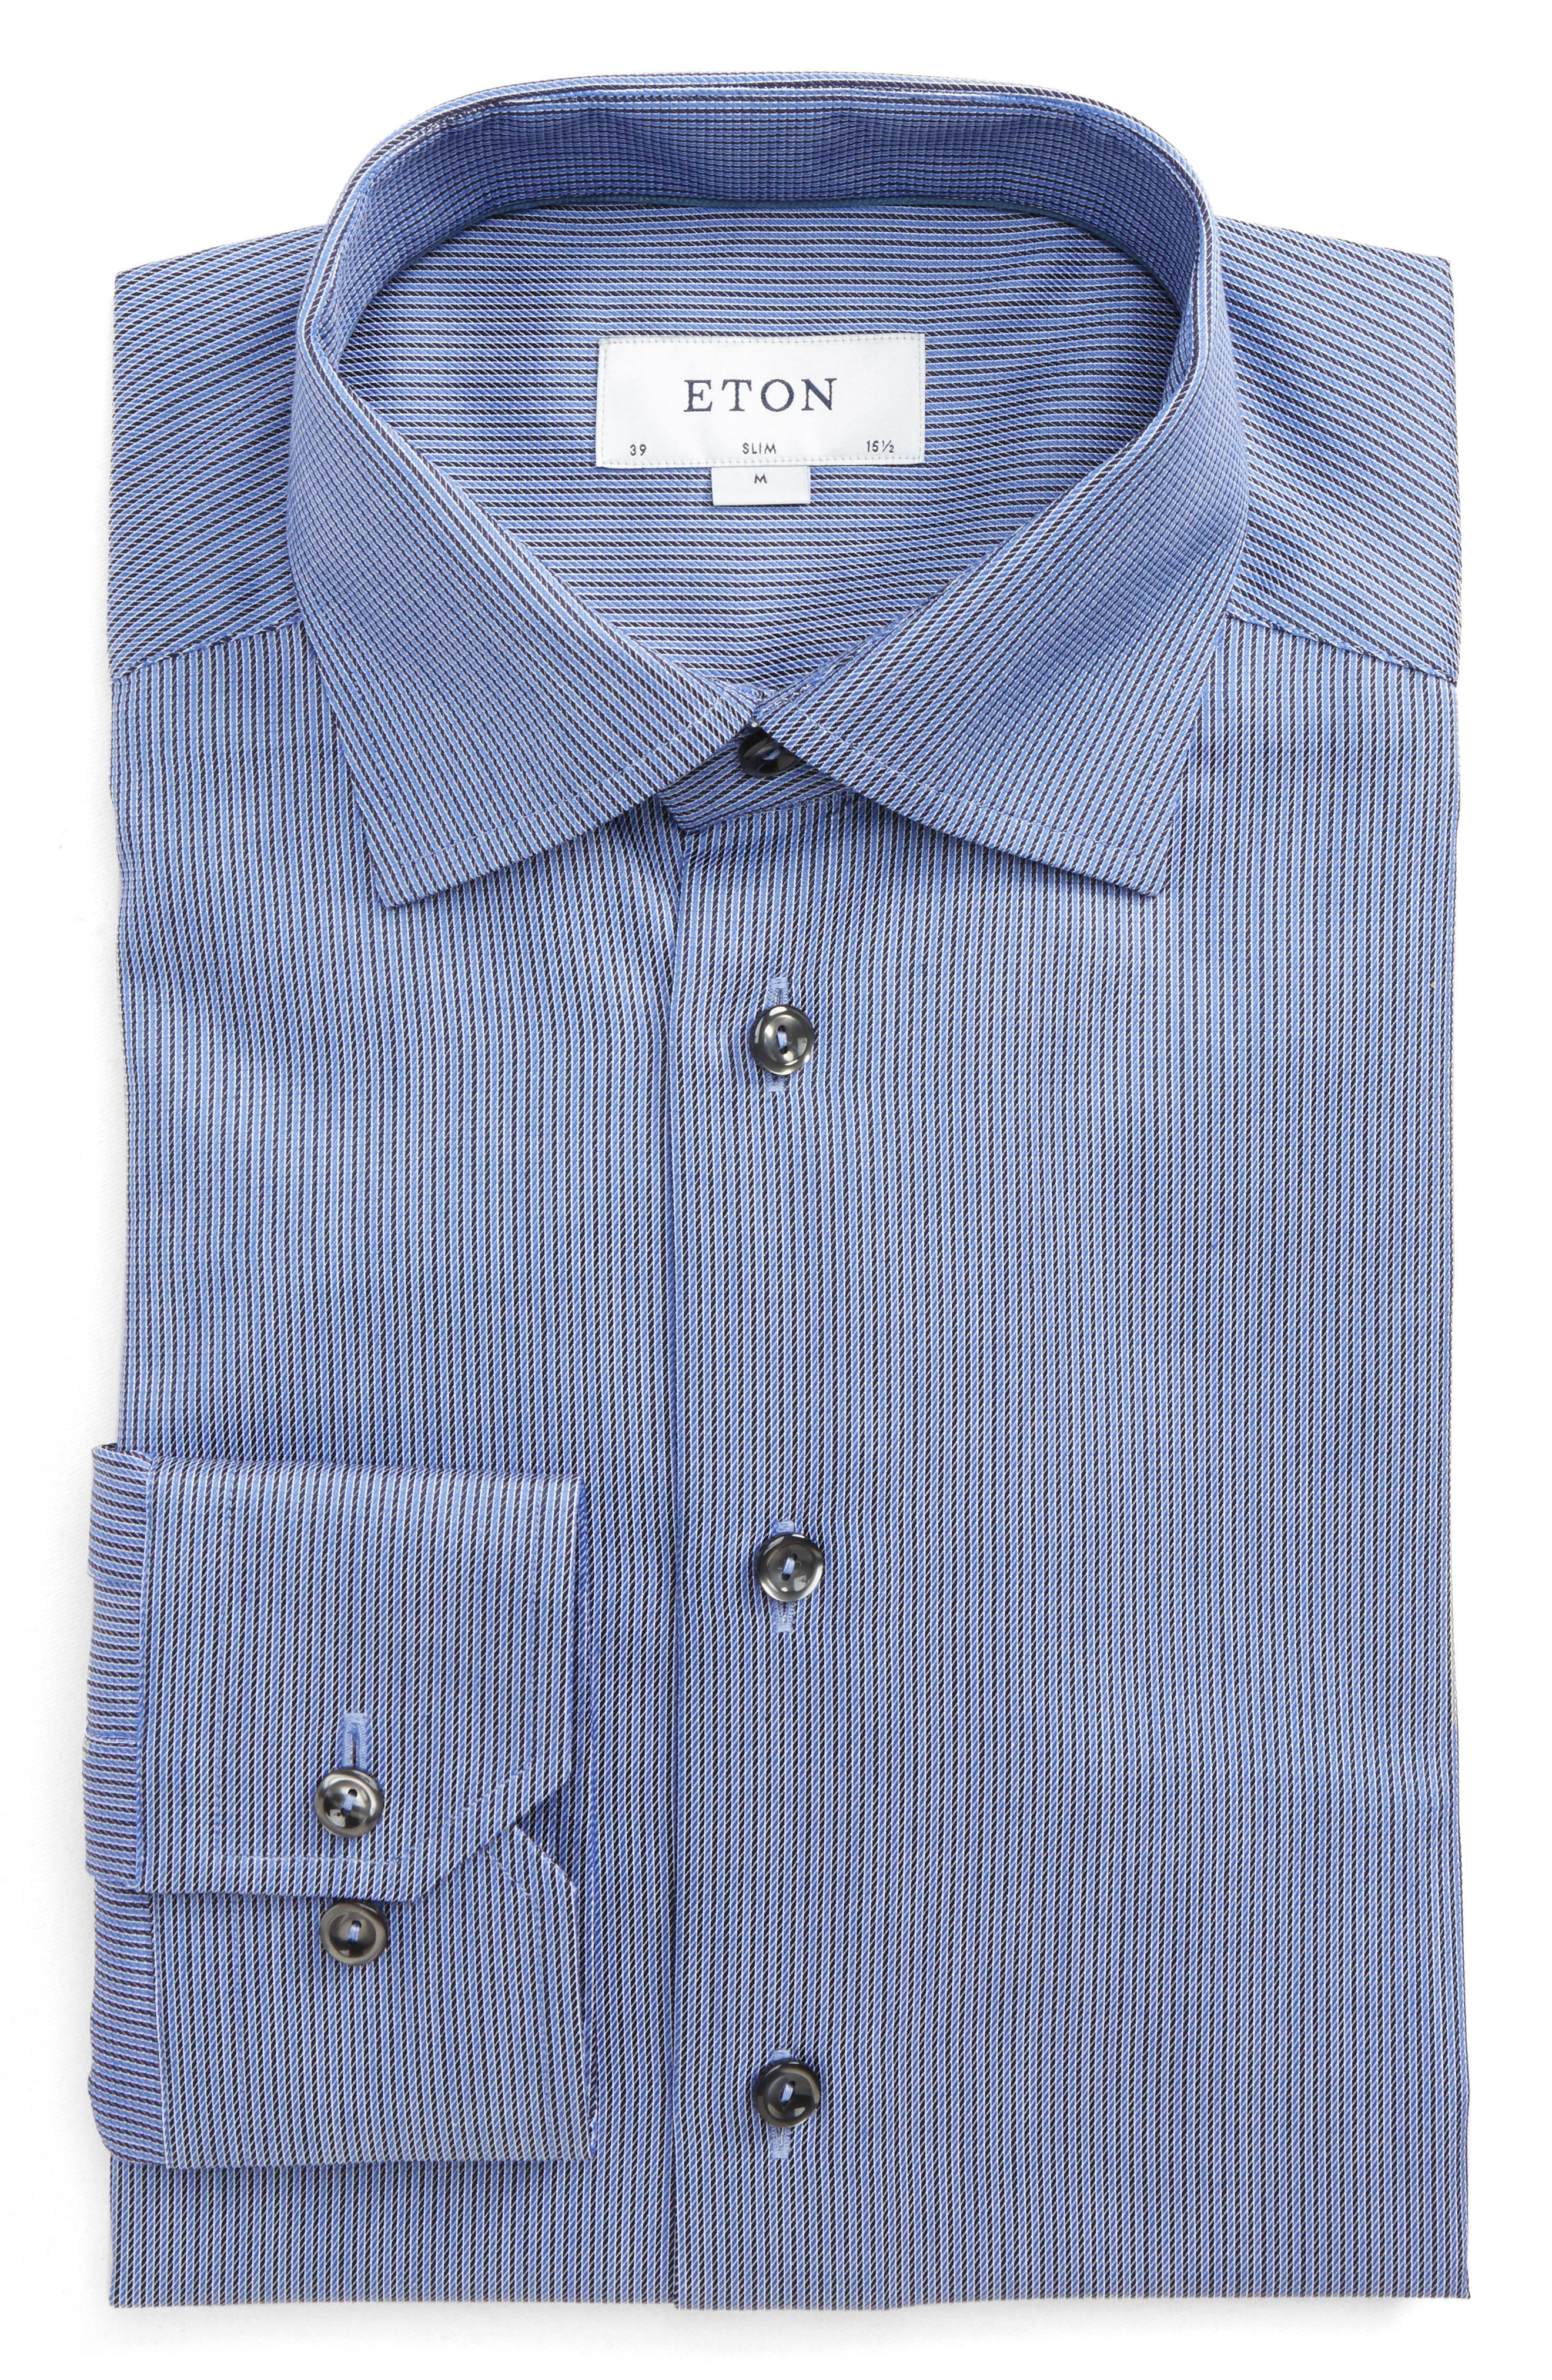 Alternate Image 1 Selected - Eton Slim Fit Stripe Dress Shirt